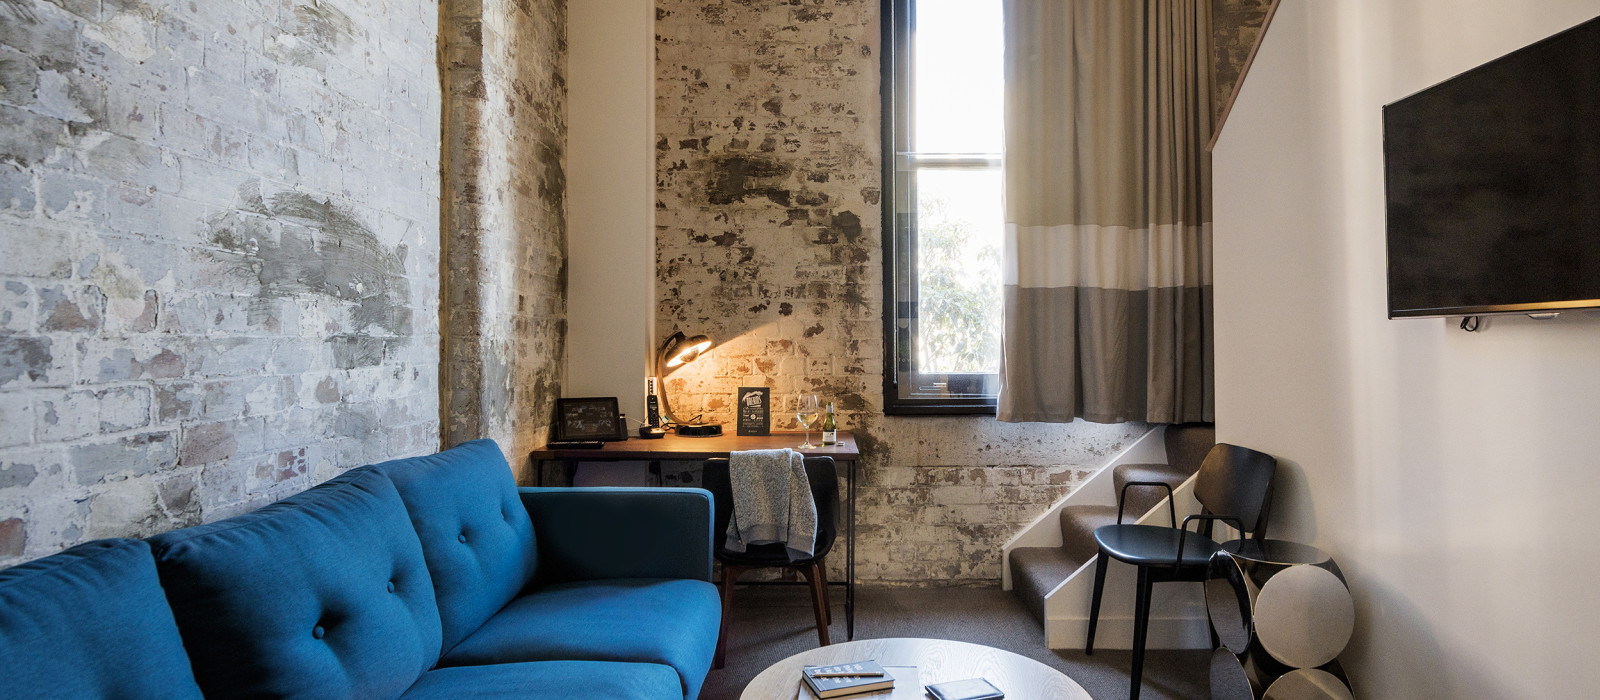 Hotel Ovolo 1888 Darling Harbour Australia